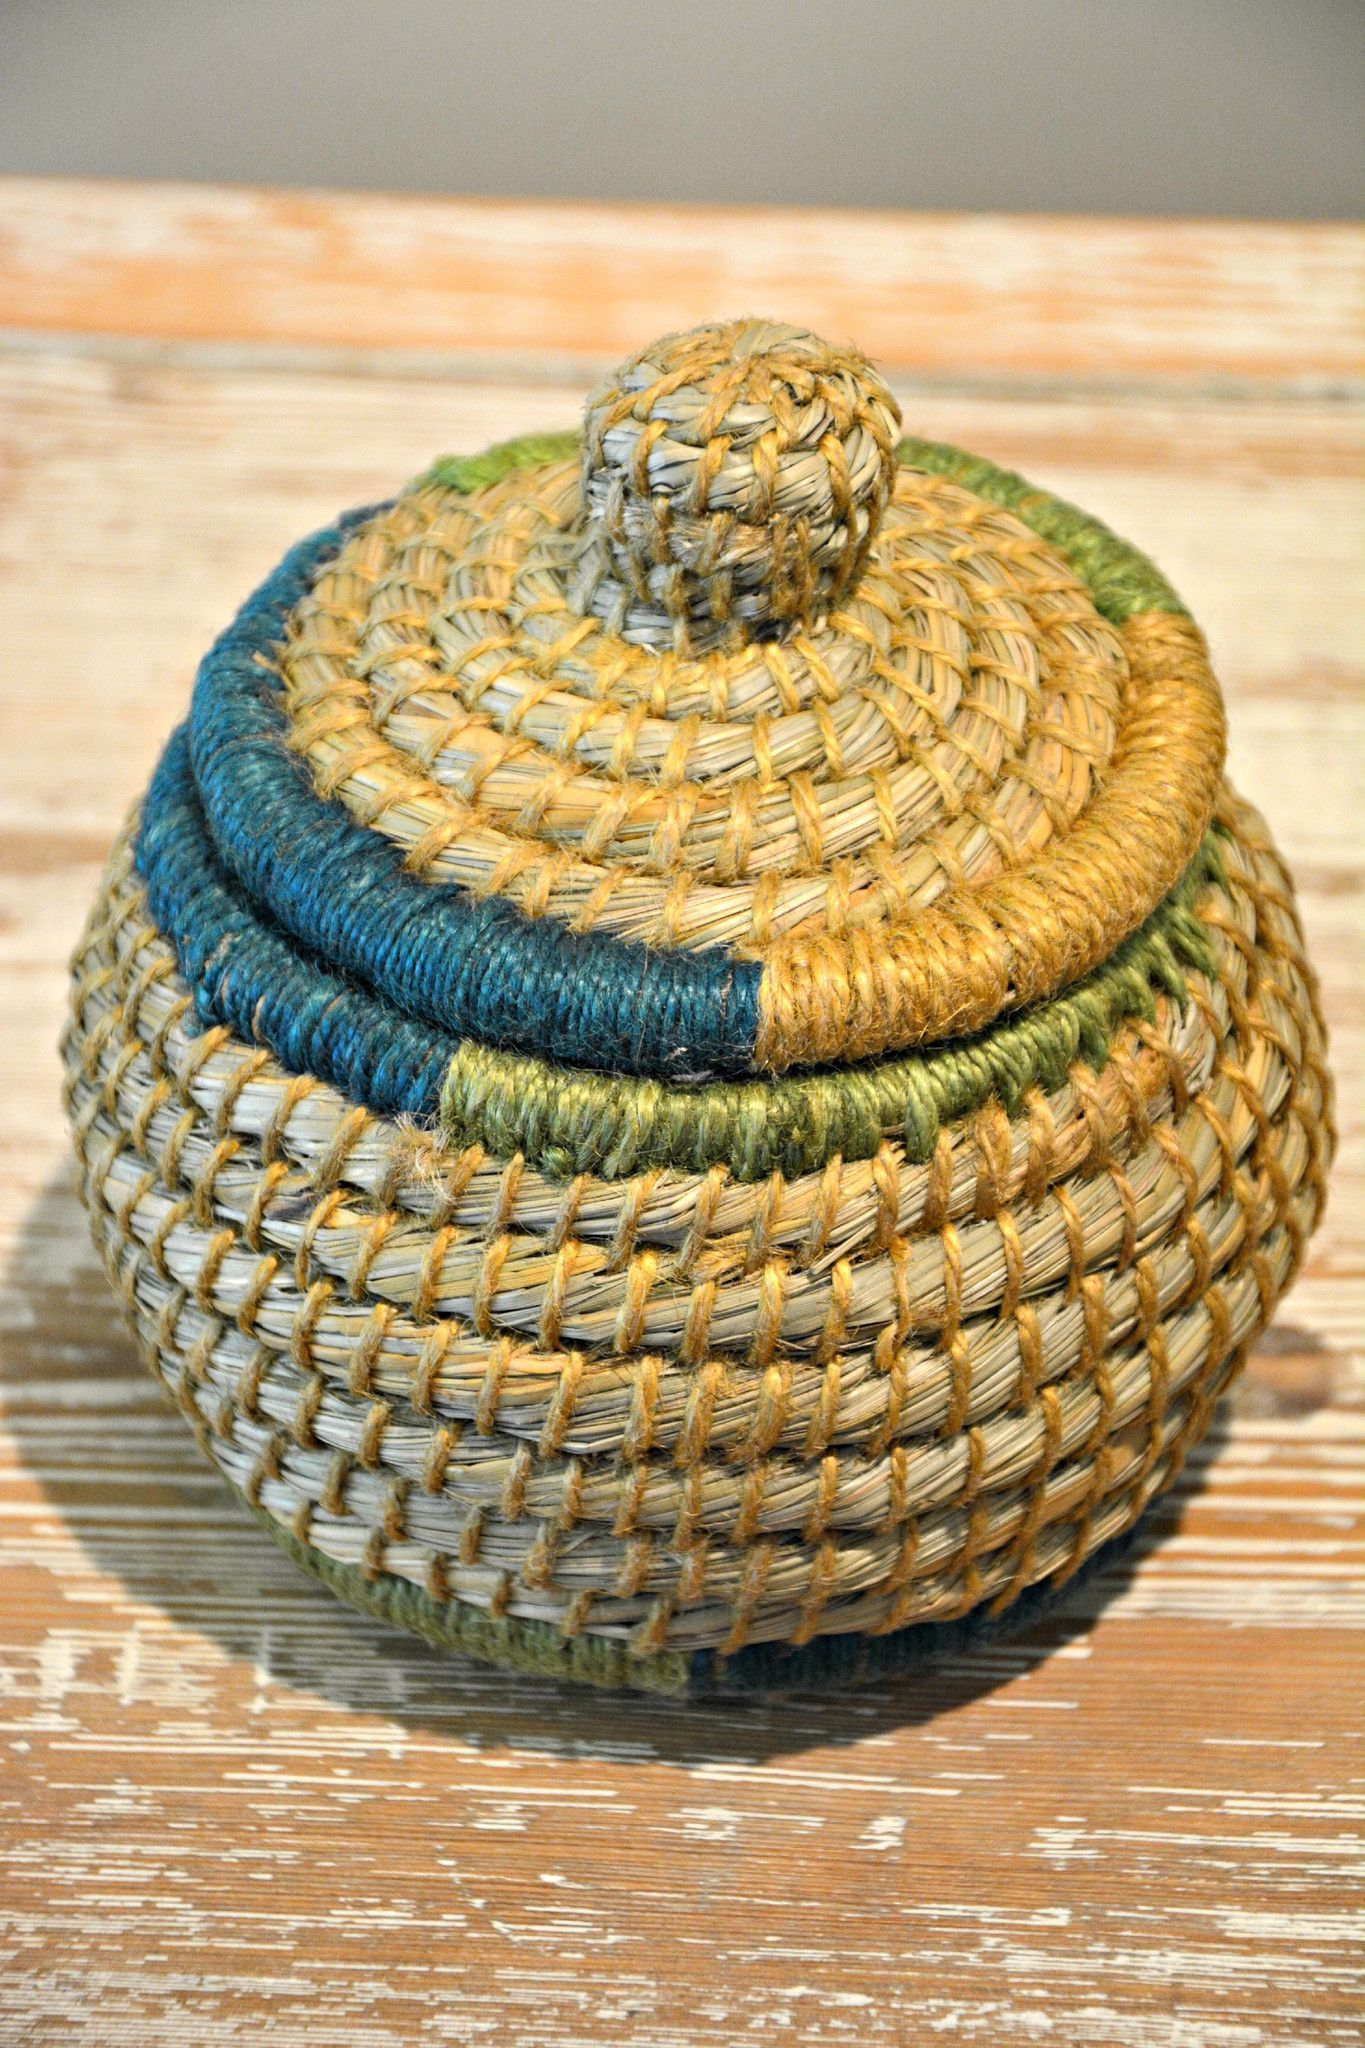 Bangladesh Jute and Kaisa Basket | Weaving | Pinterest | Jute and ...